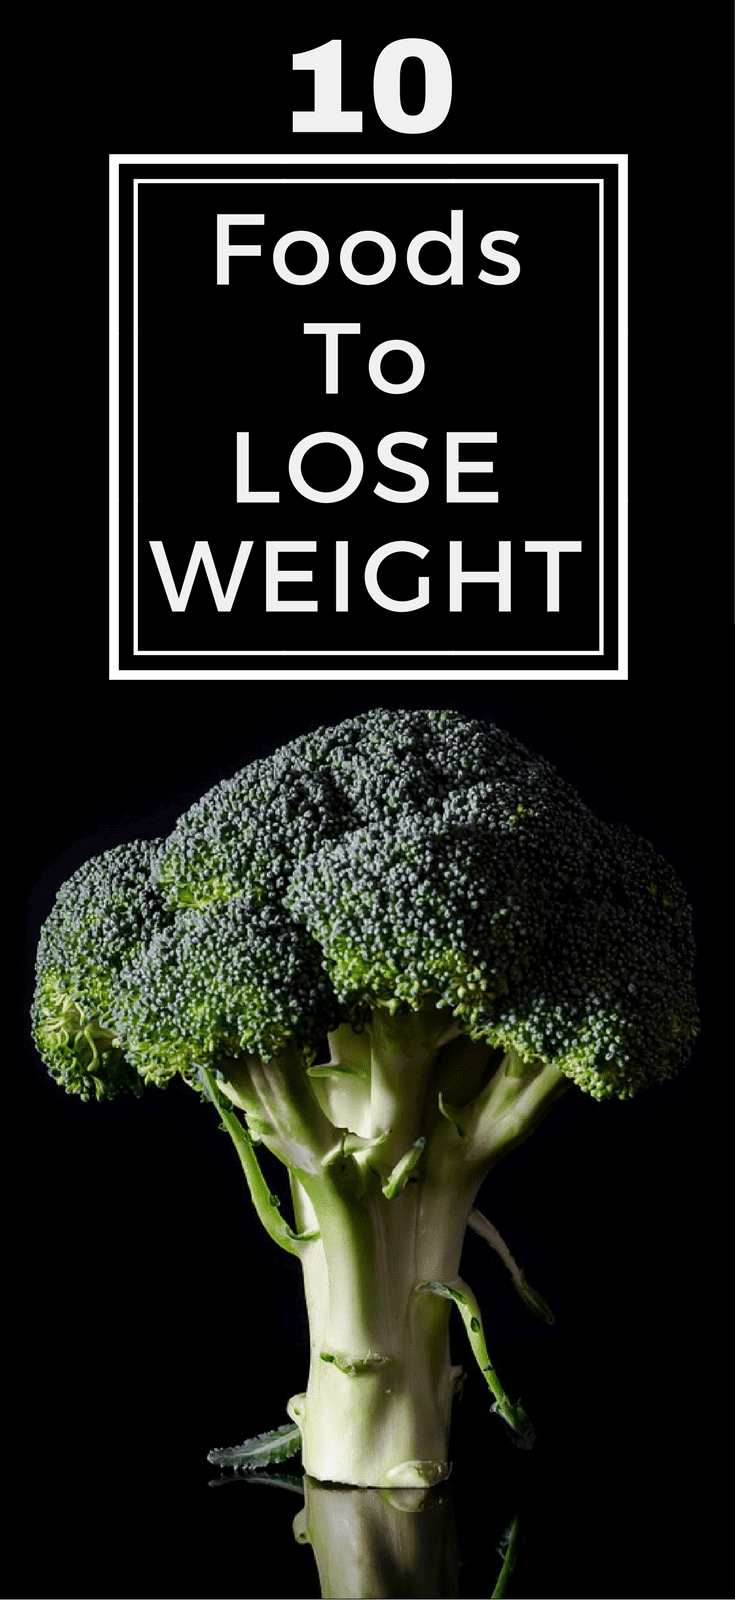 10 Foods To Lose Weight